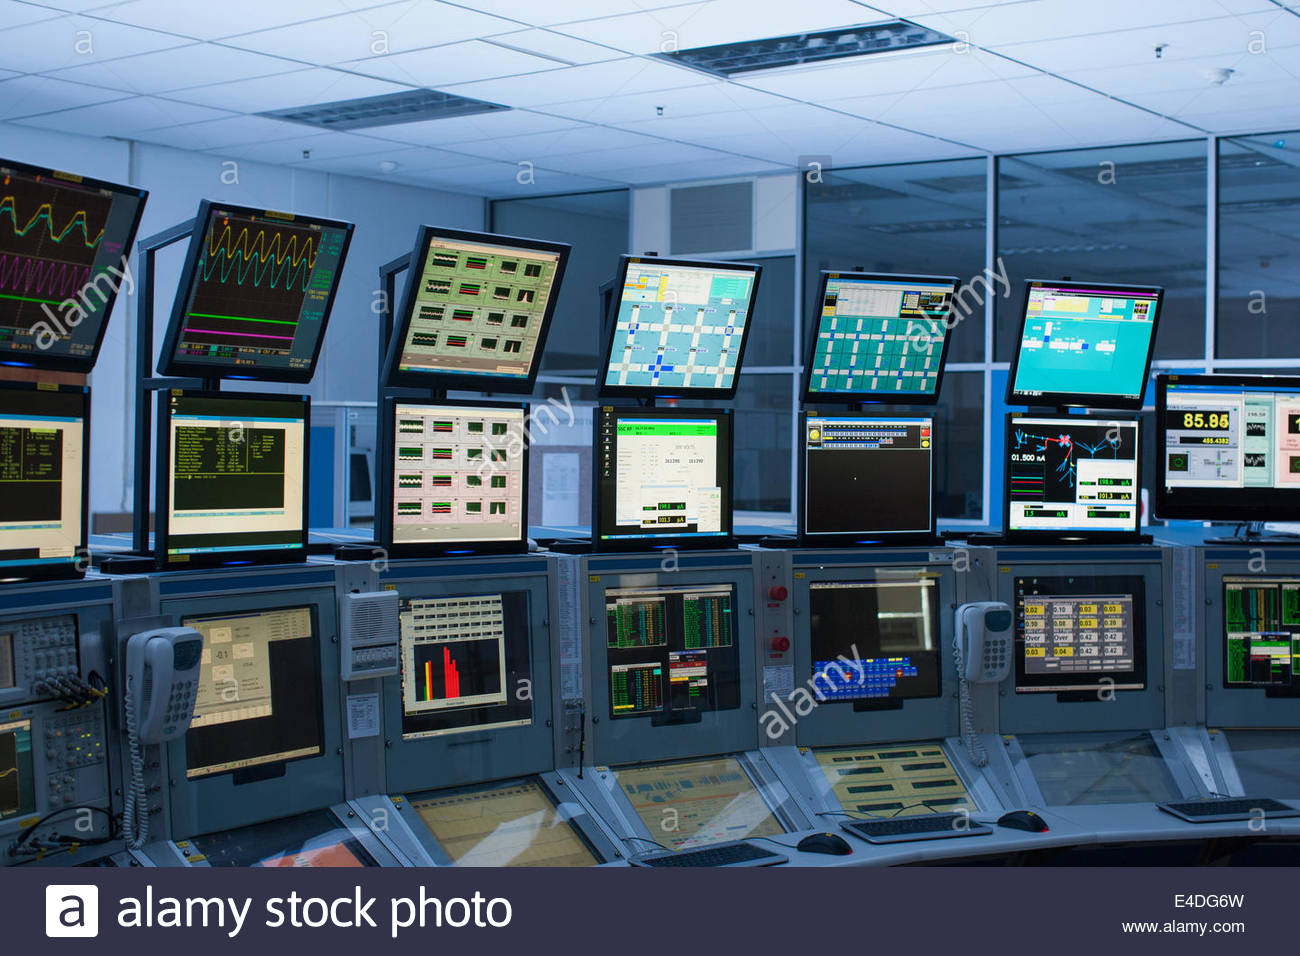 Computers in control room - Stock Image